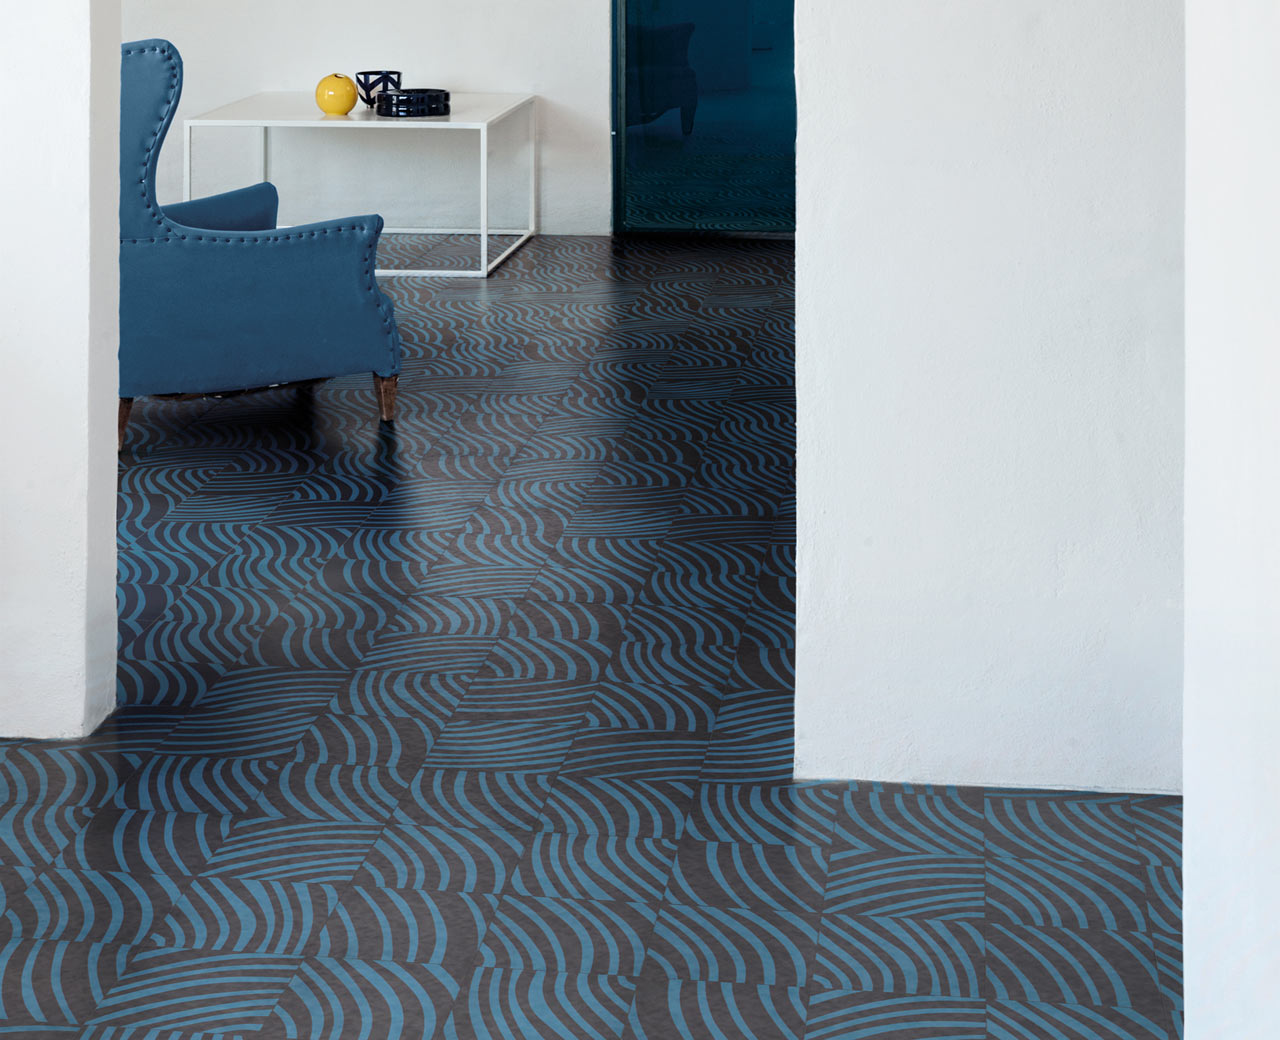 Bisazza Launches Tonal Collection by David Rockwell for Bisazza Cementiles